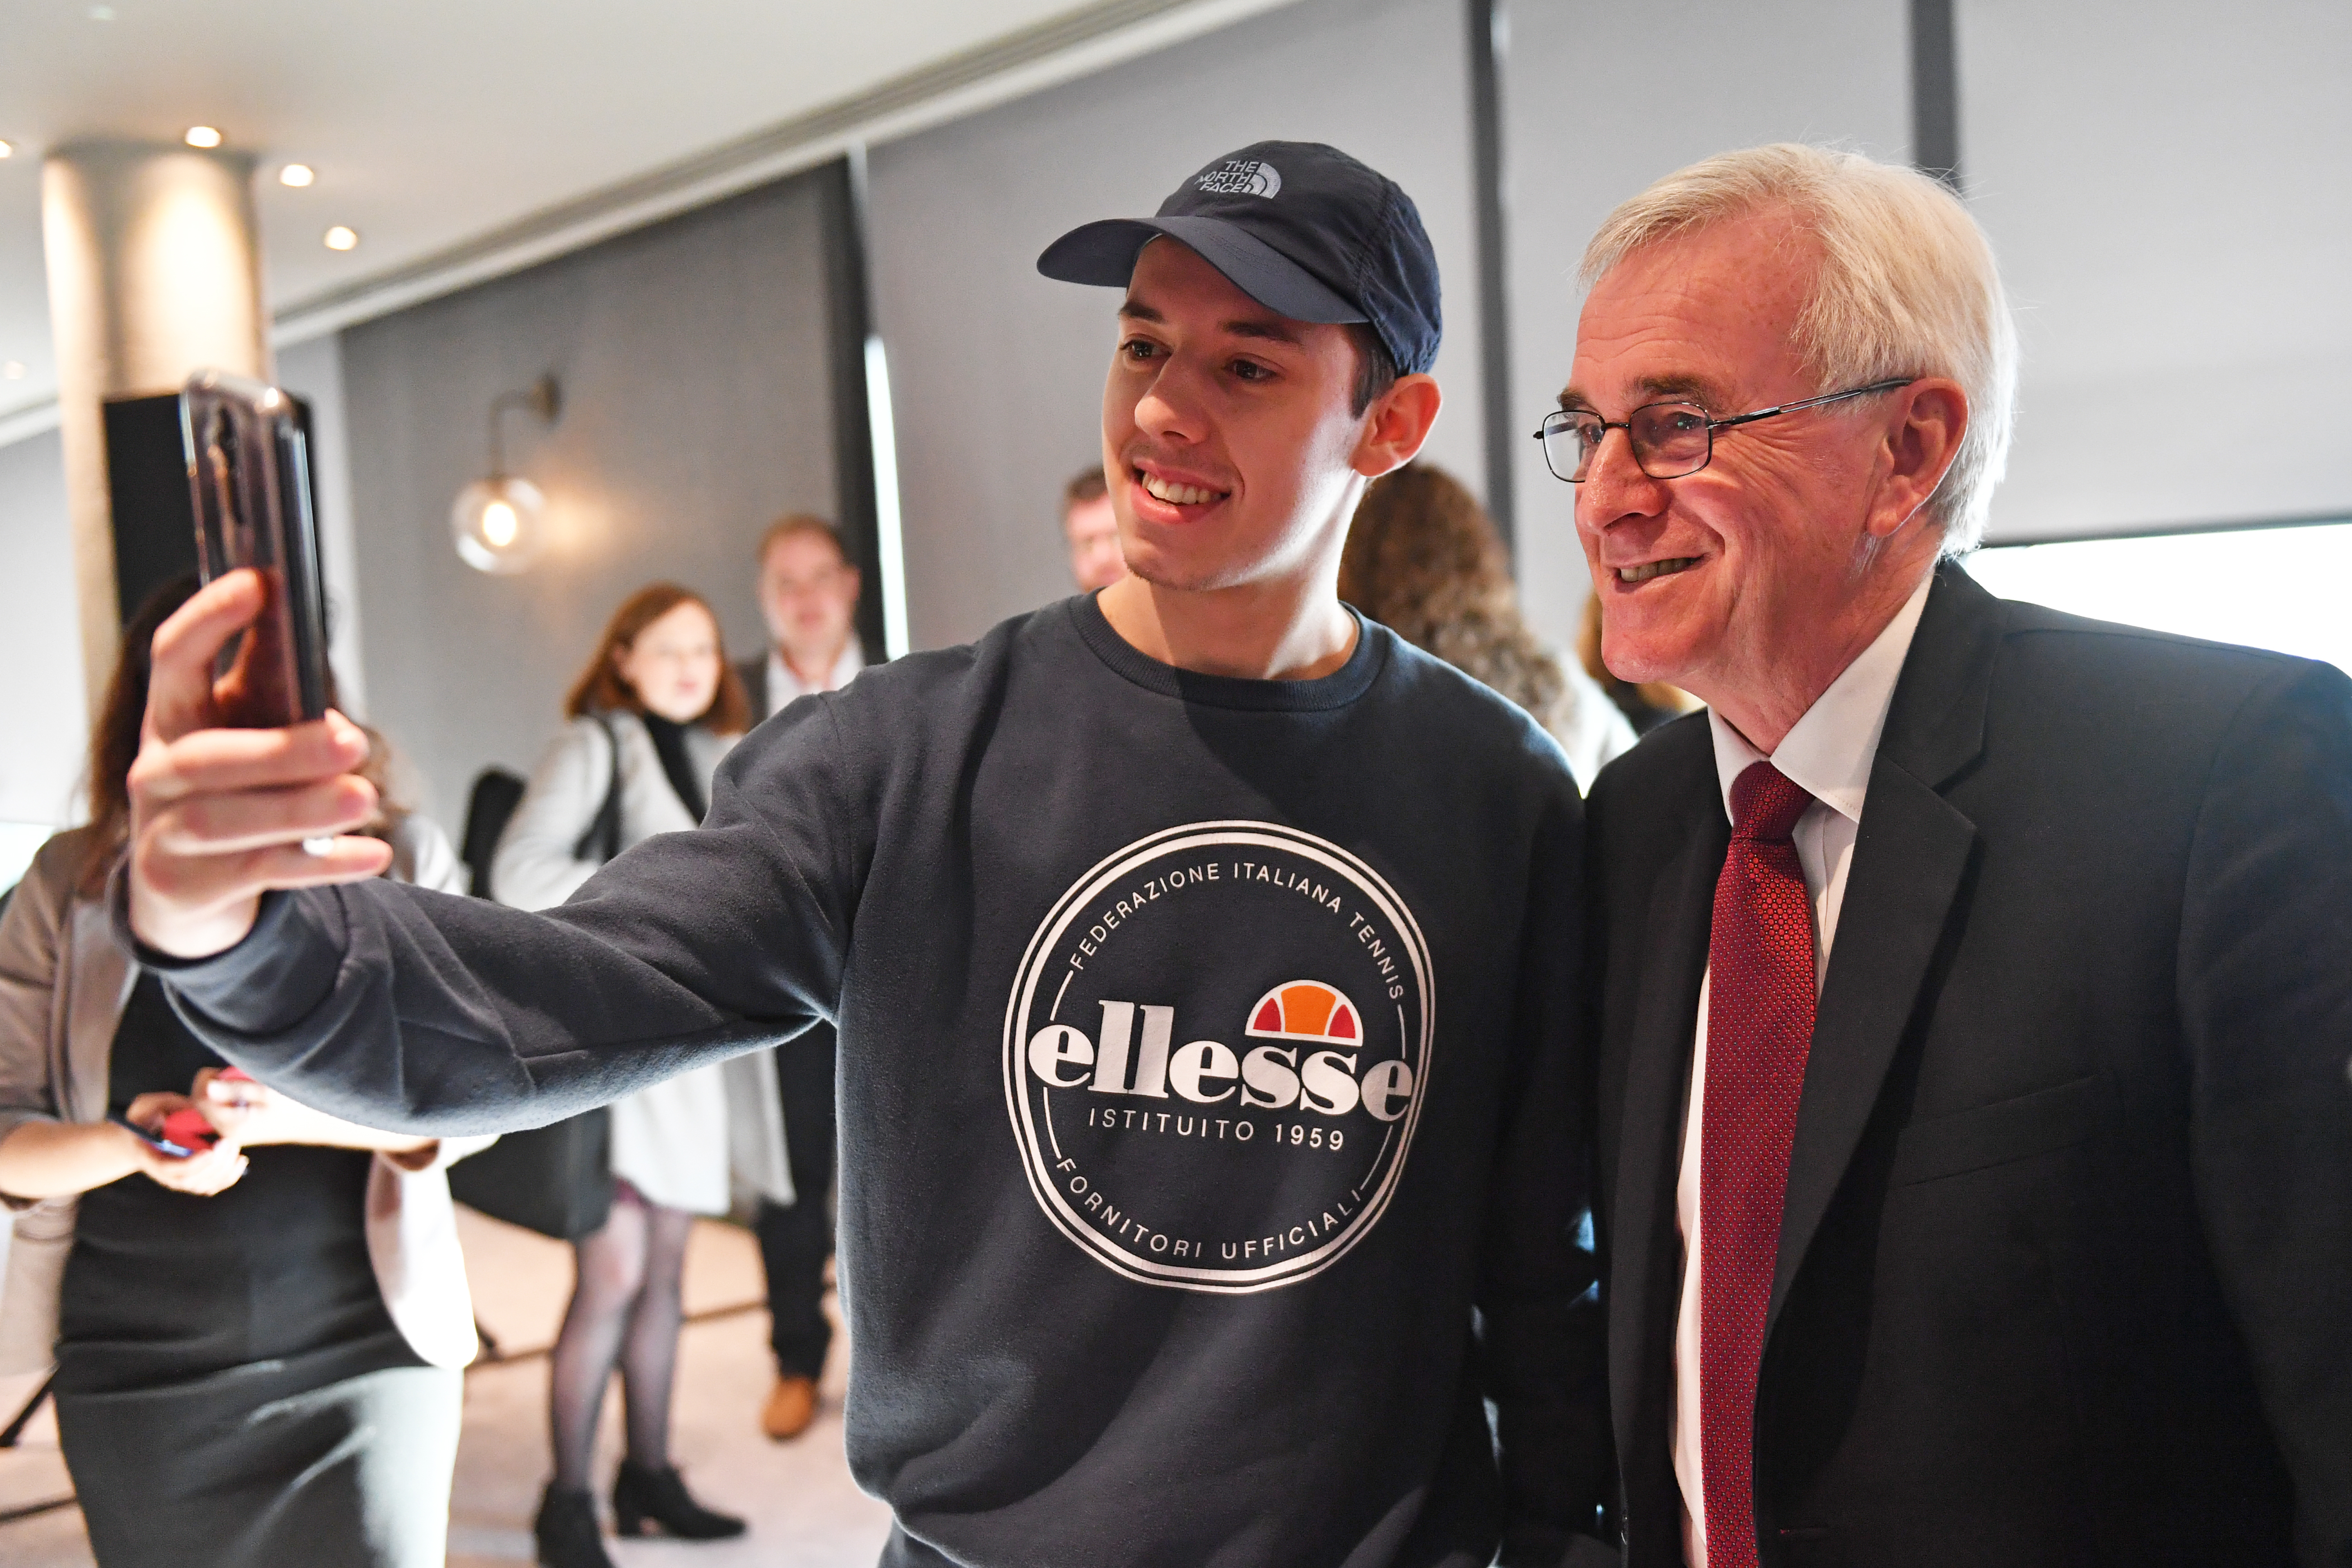 Shadow chancellor John McDonnell takes a photo with a supporter at a campaign event in Birmingham, whilst on the General Election campaign trail.